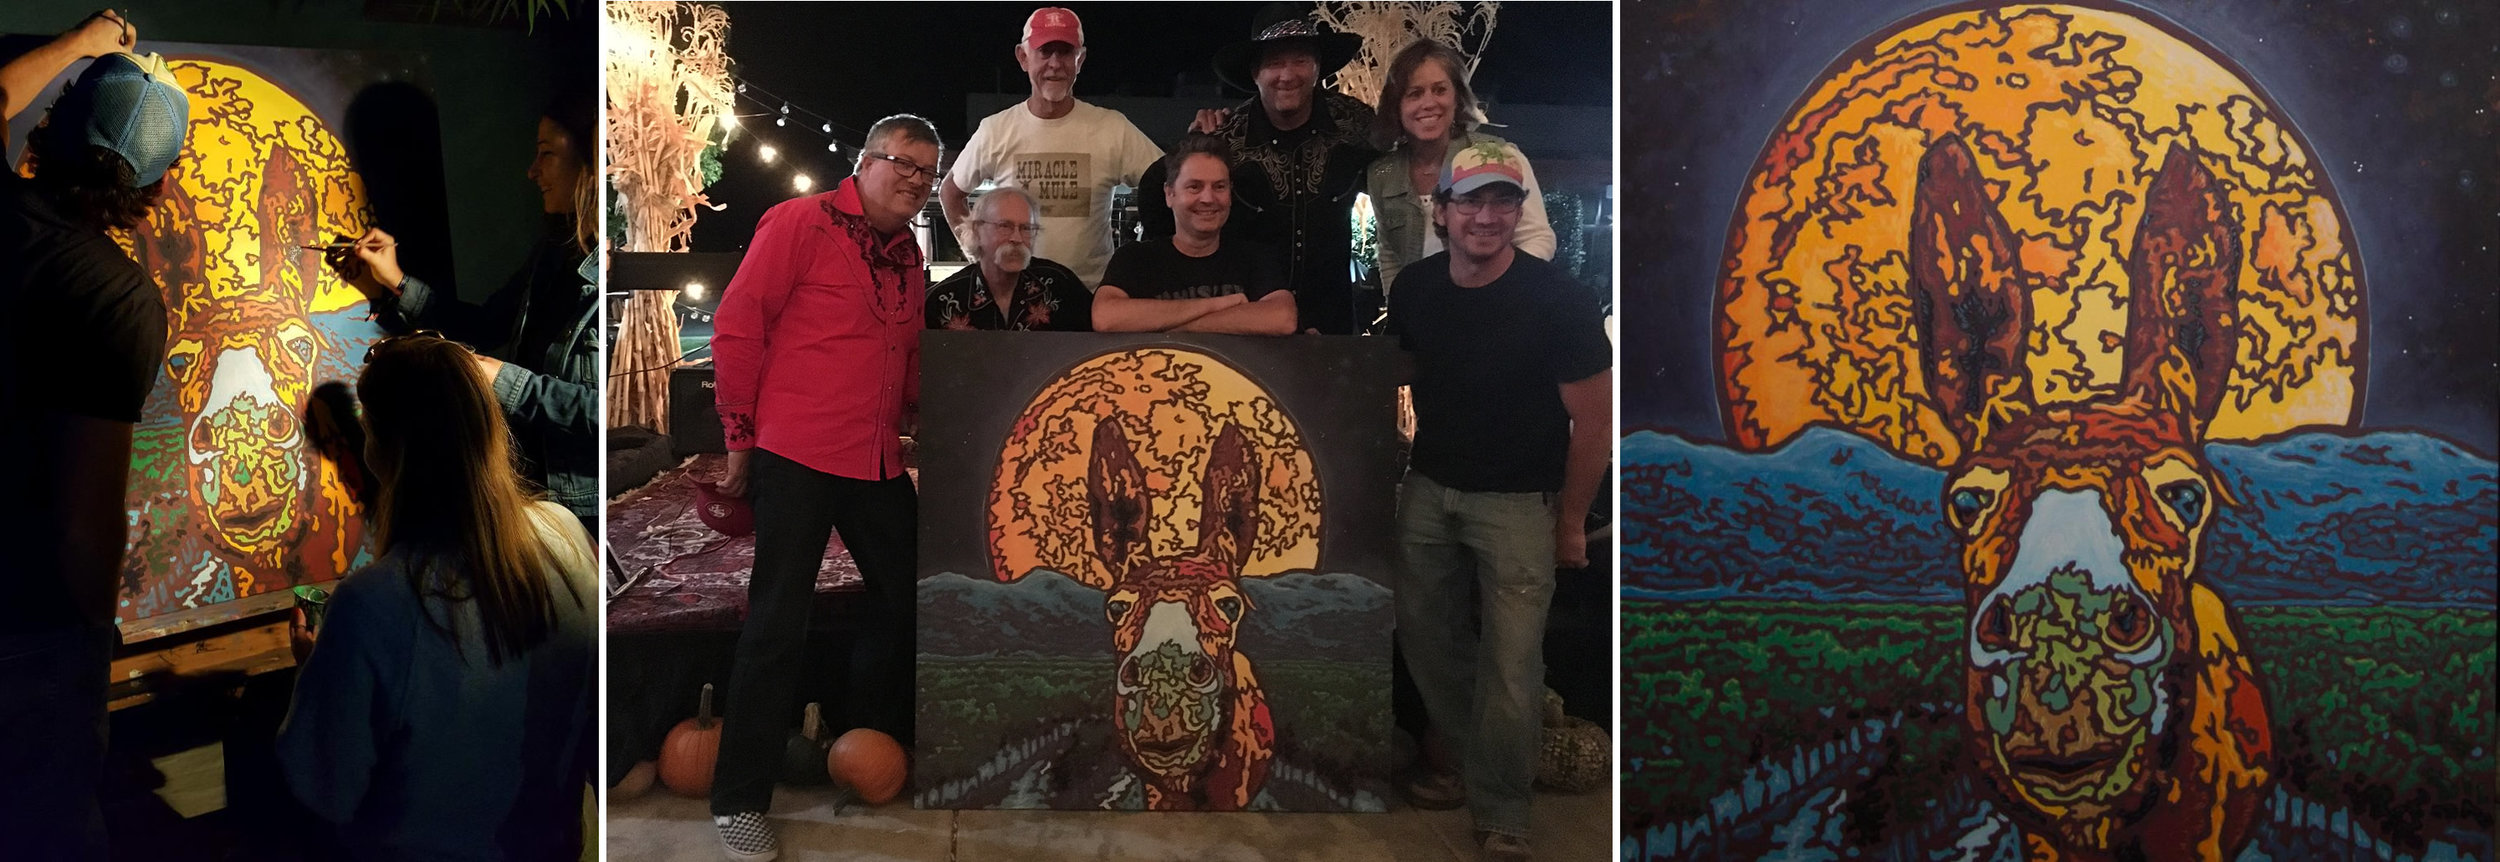 Left to right:  The work in progress, Artist William Callnan III (front right) posing with 7 Mules, the completed masterpiece